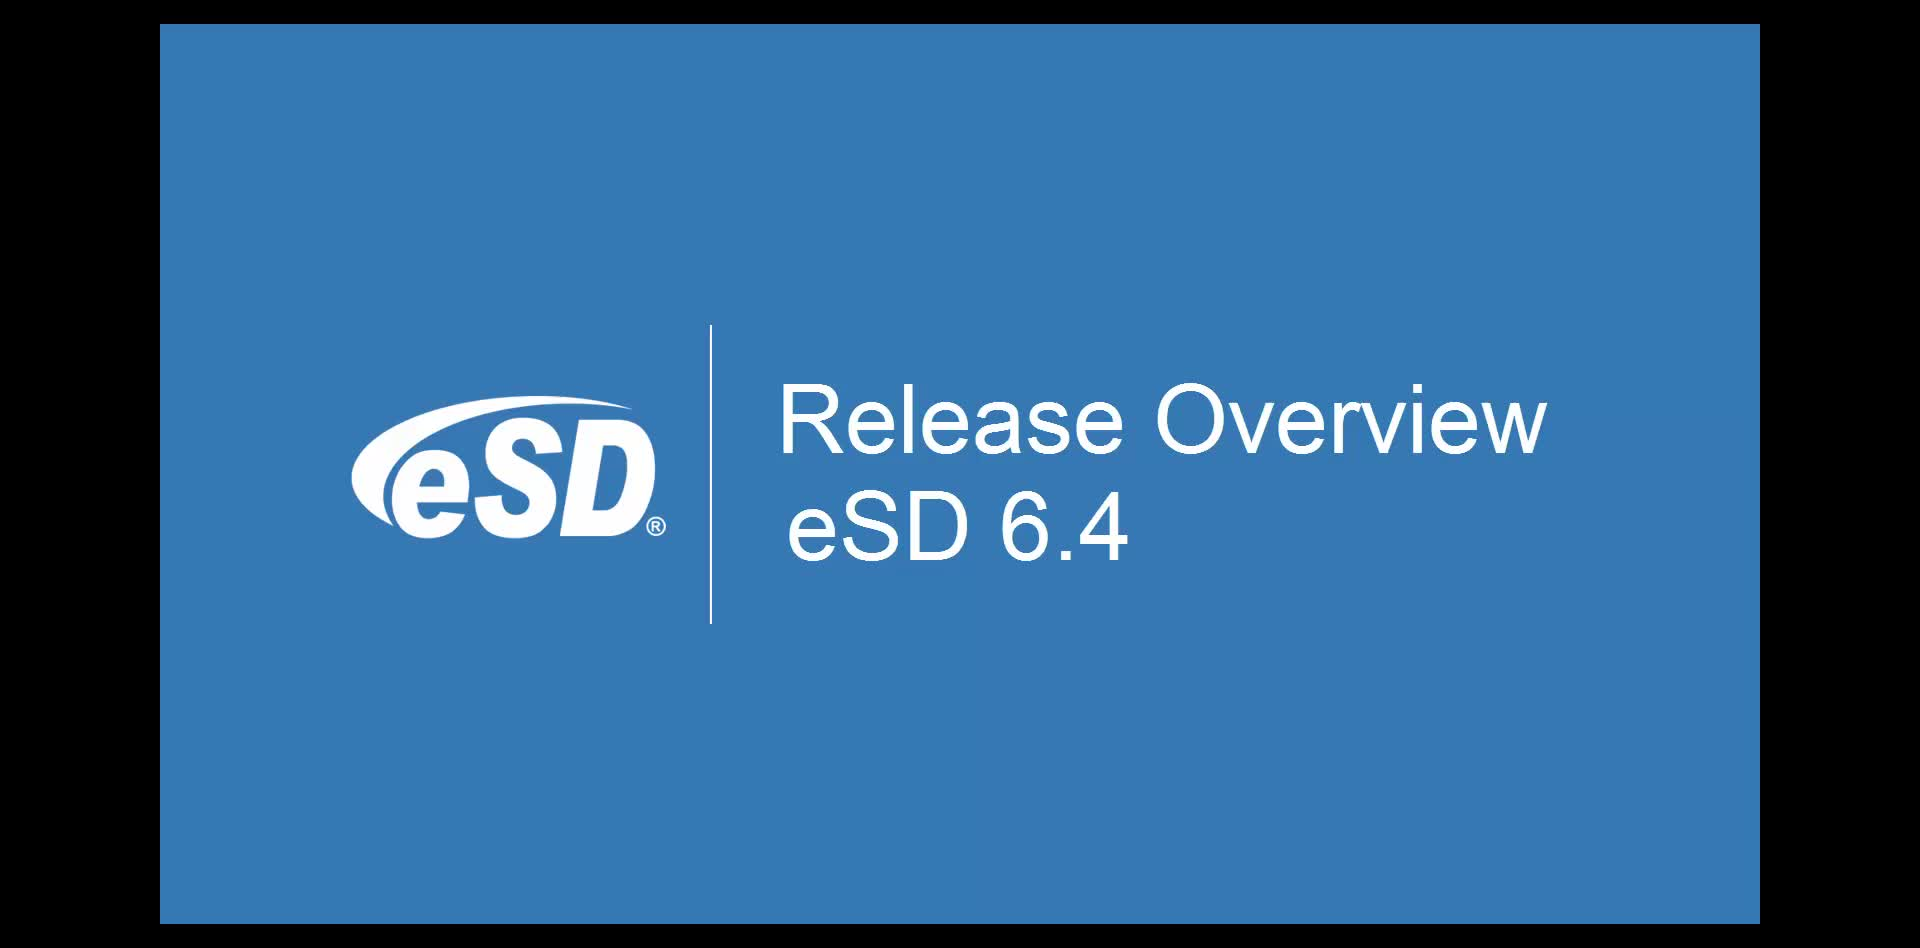 eSD 6.4 Release Overview